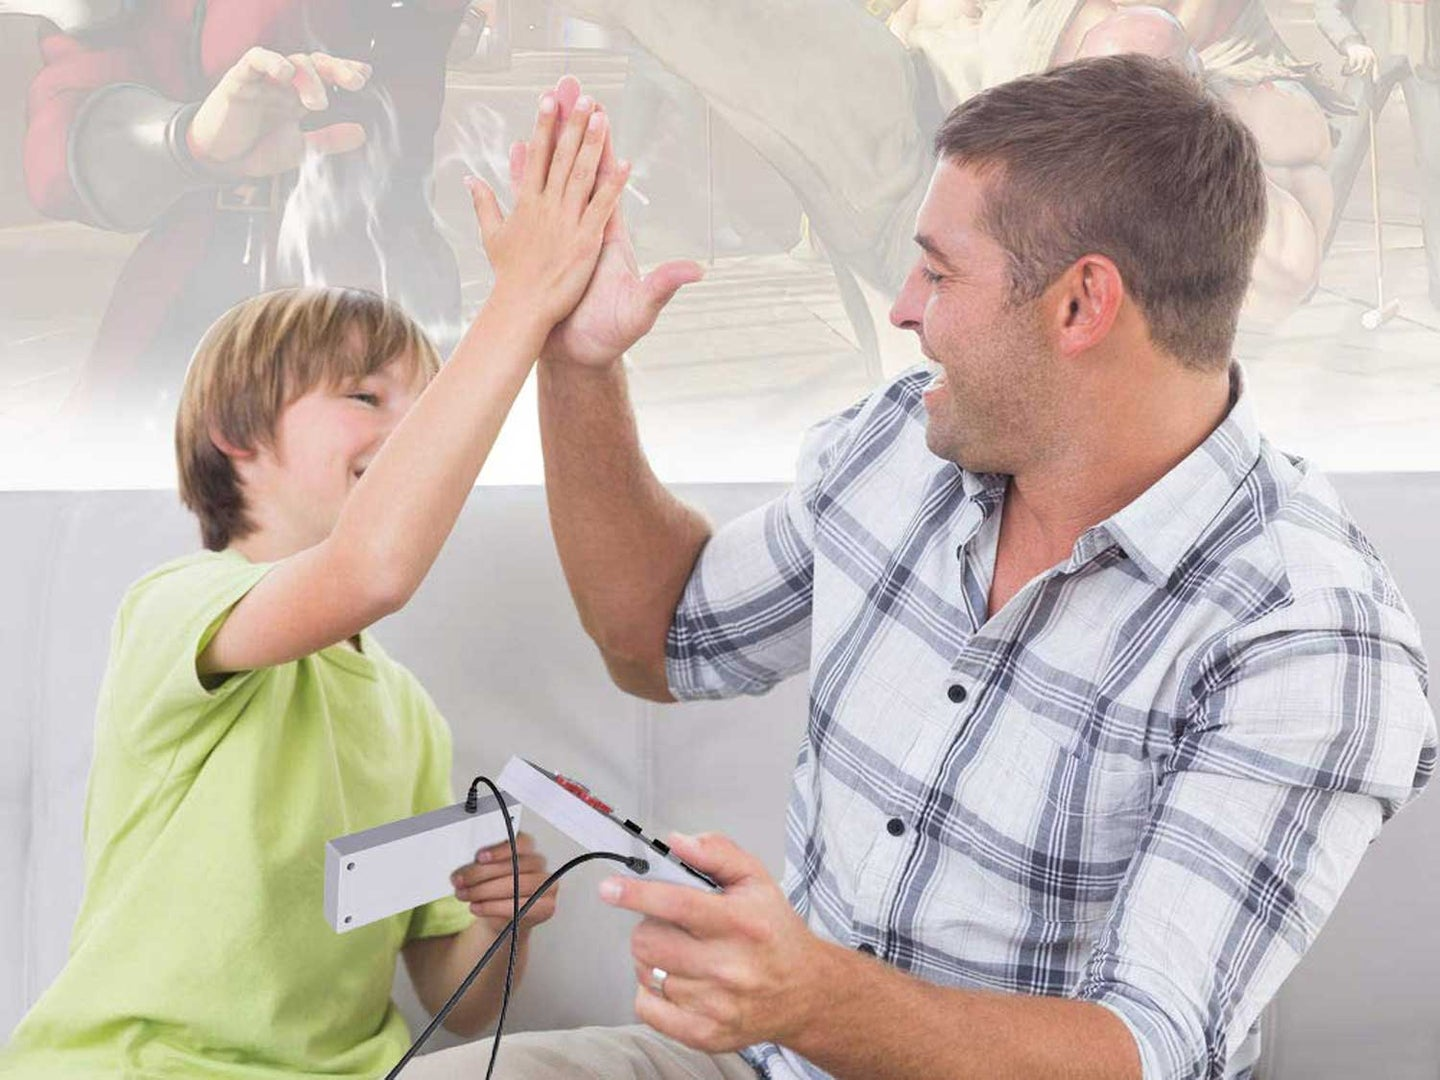 Man and boy play games